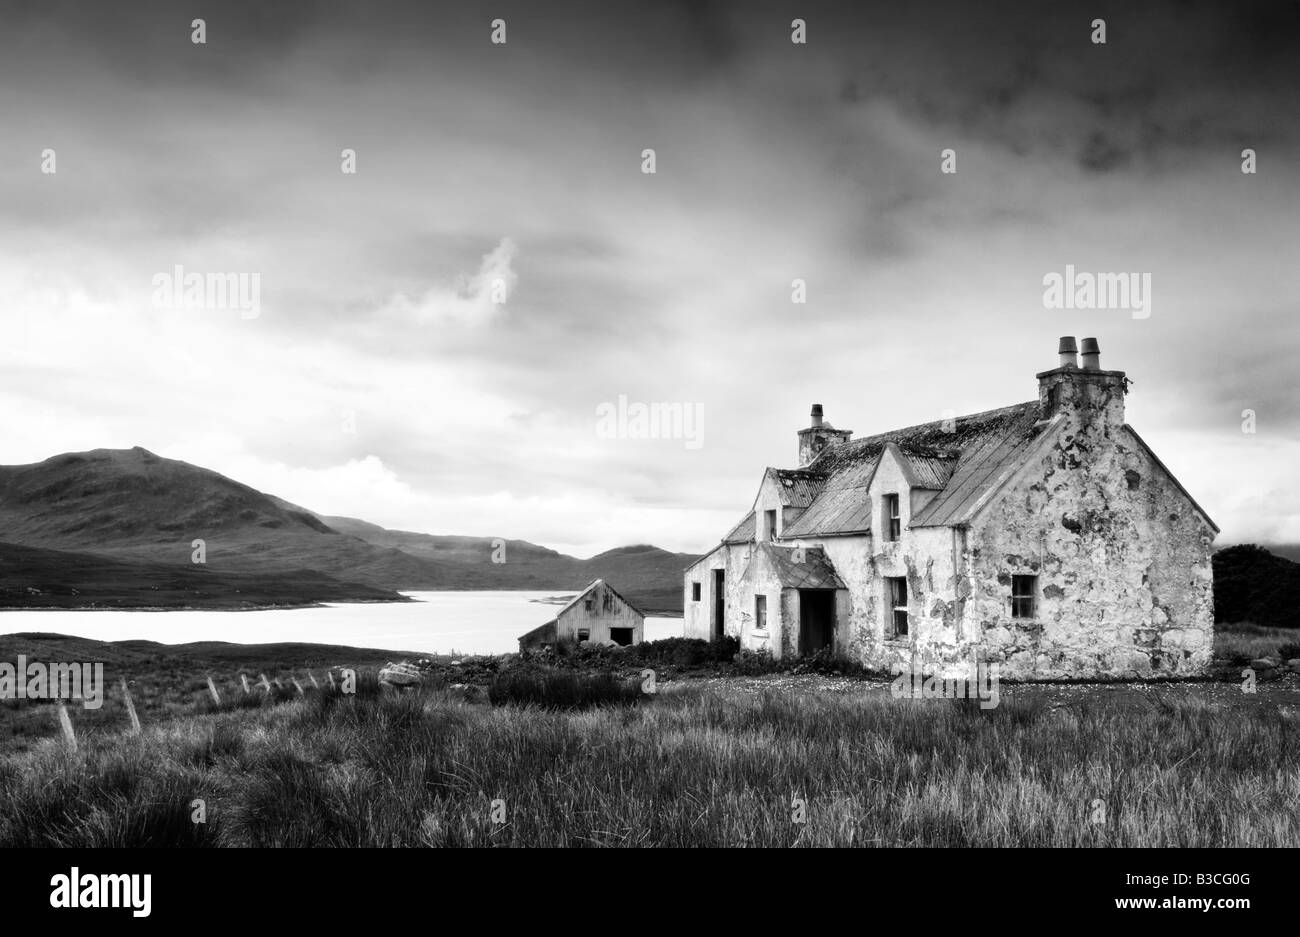 Deserted farm near Arivruach, Isle of Lewis, Hebrides, Scotland, UK - Stock Image